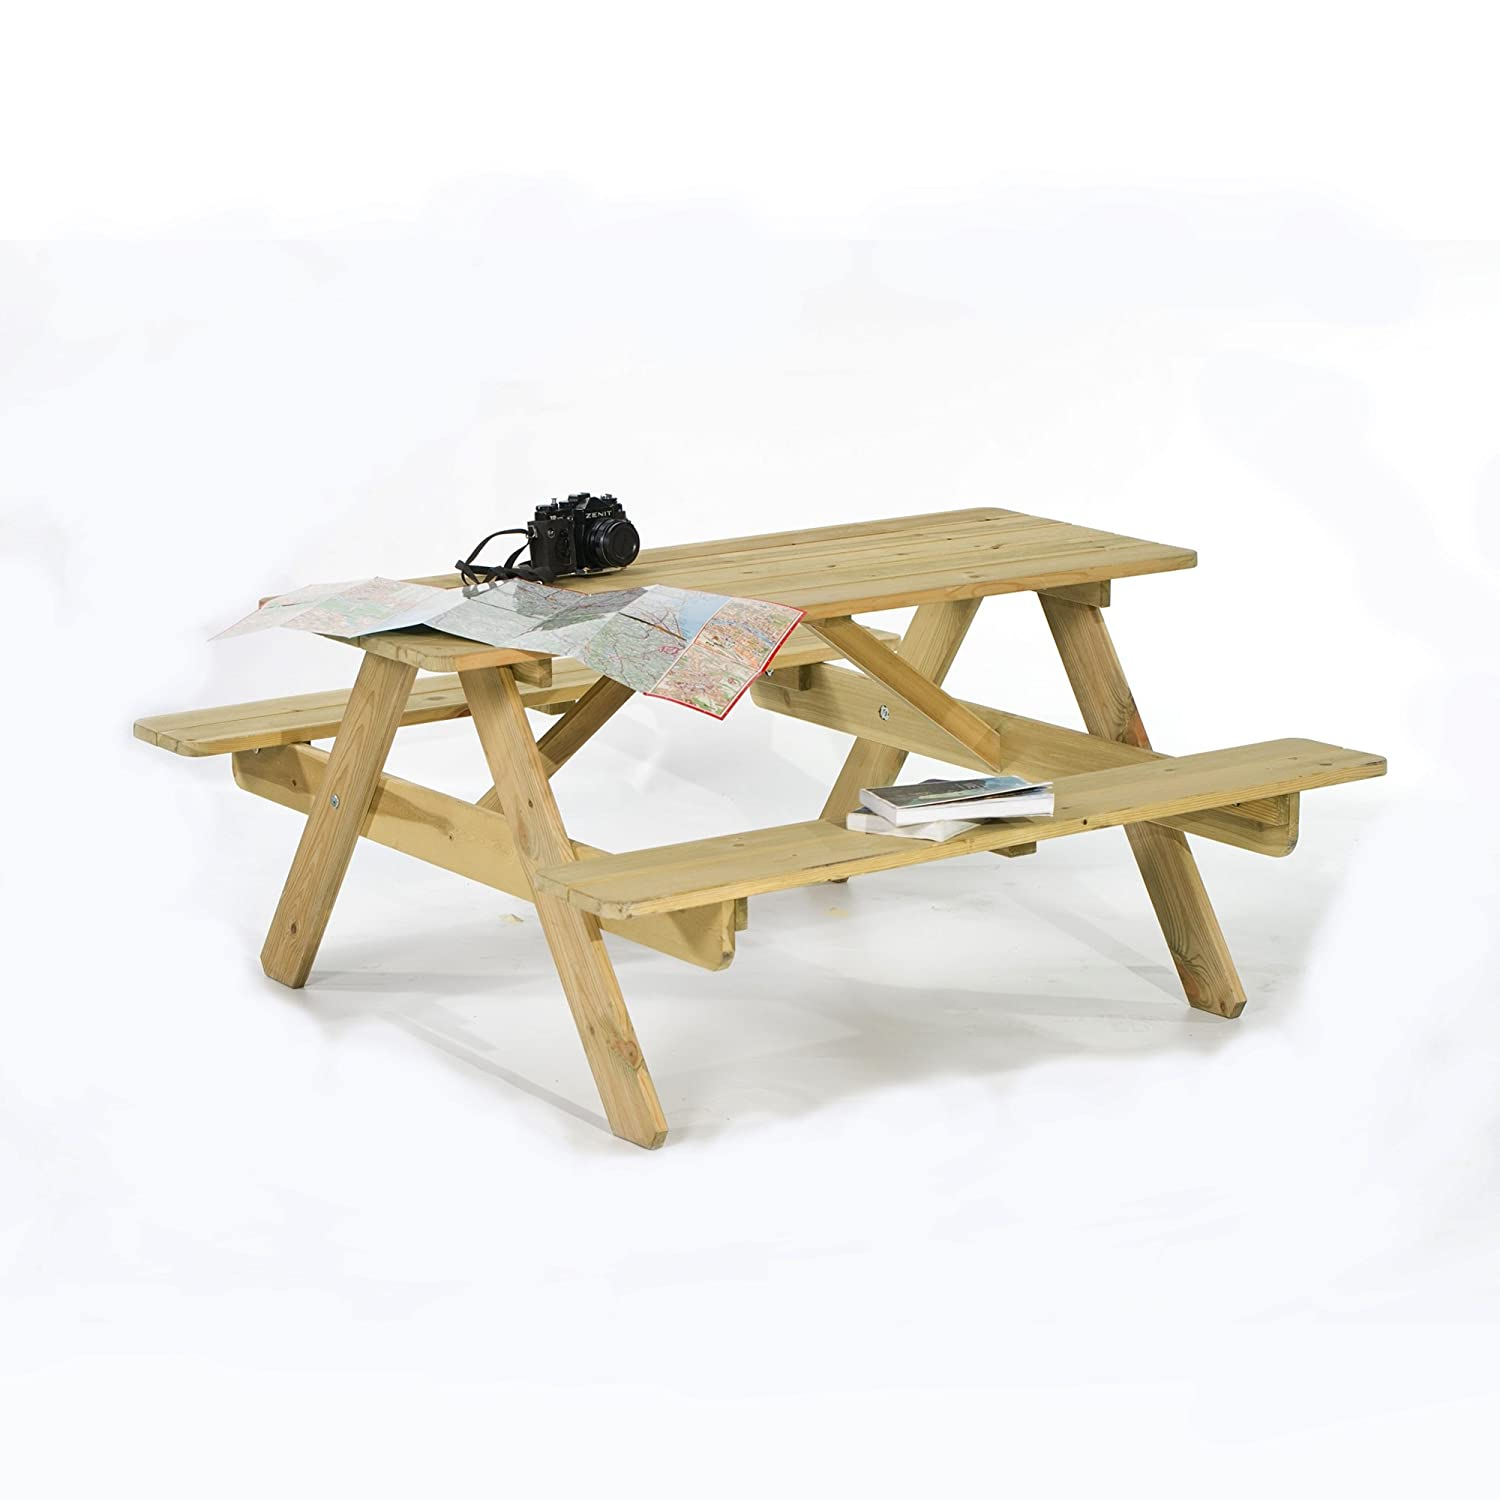 Leisurebench Picnic Pub Bench 6 Seater FSC Wooden Garden Patio Table Thick Timbers BrackenStyle